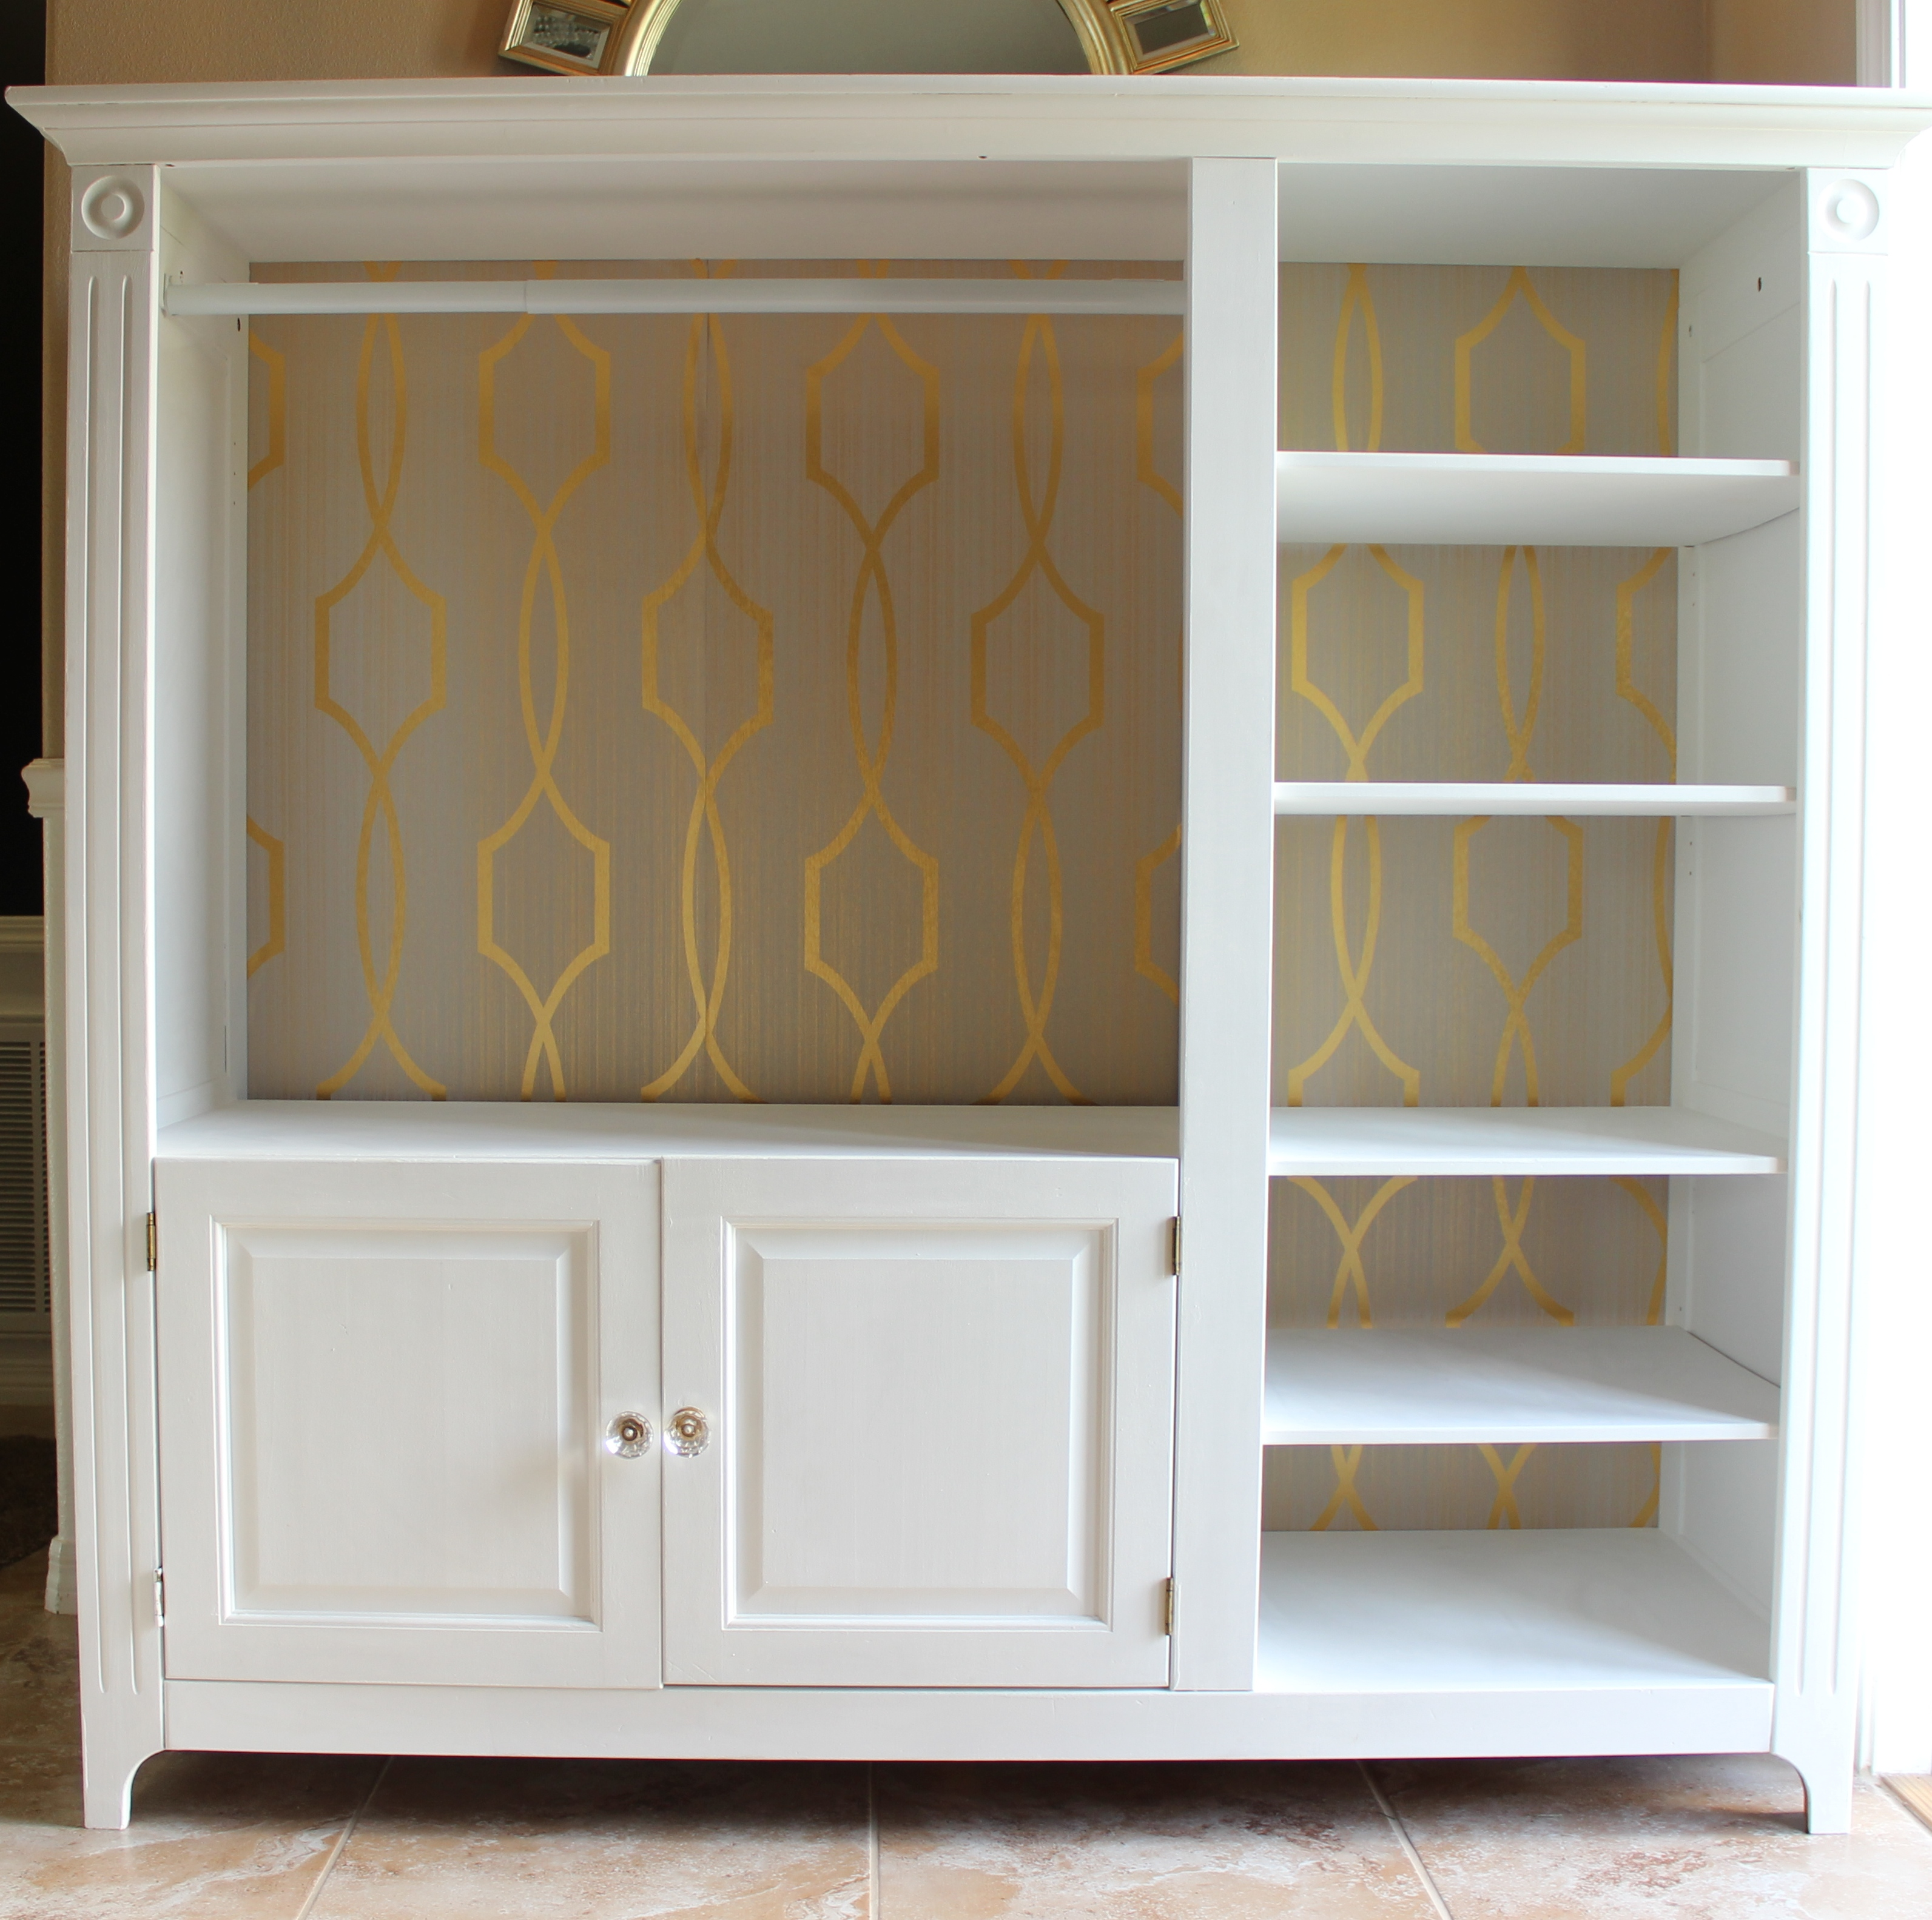 Tv Stand Turned Wardrobe Closet Frills Amp Drills